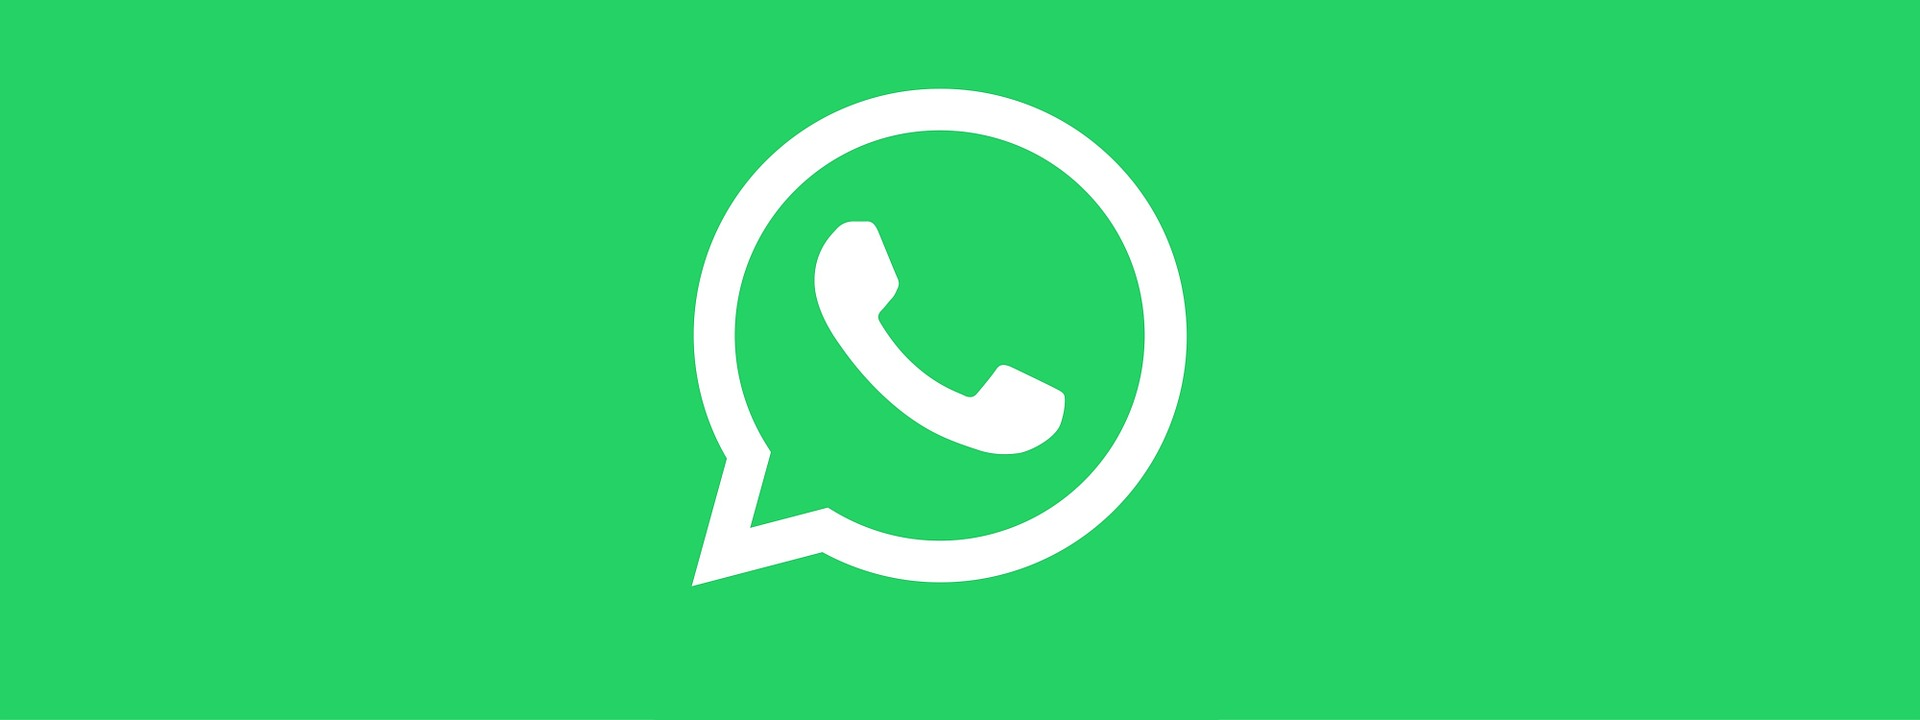 comment espionner whatsapp